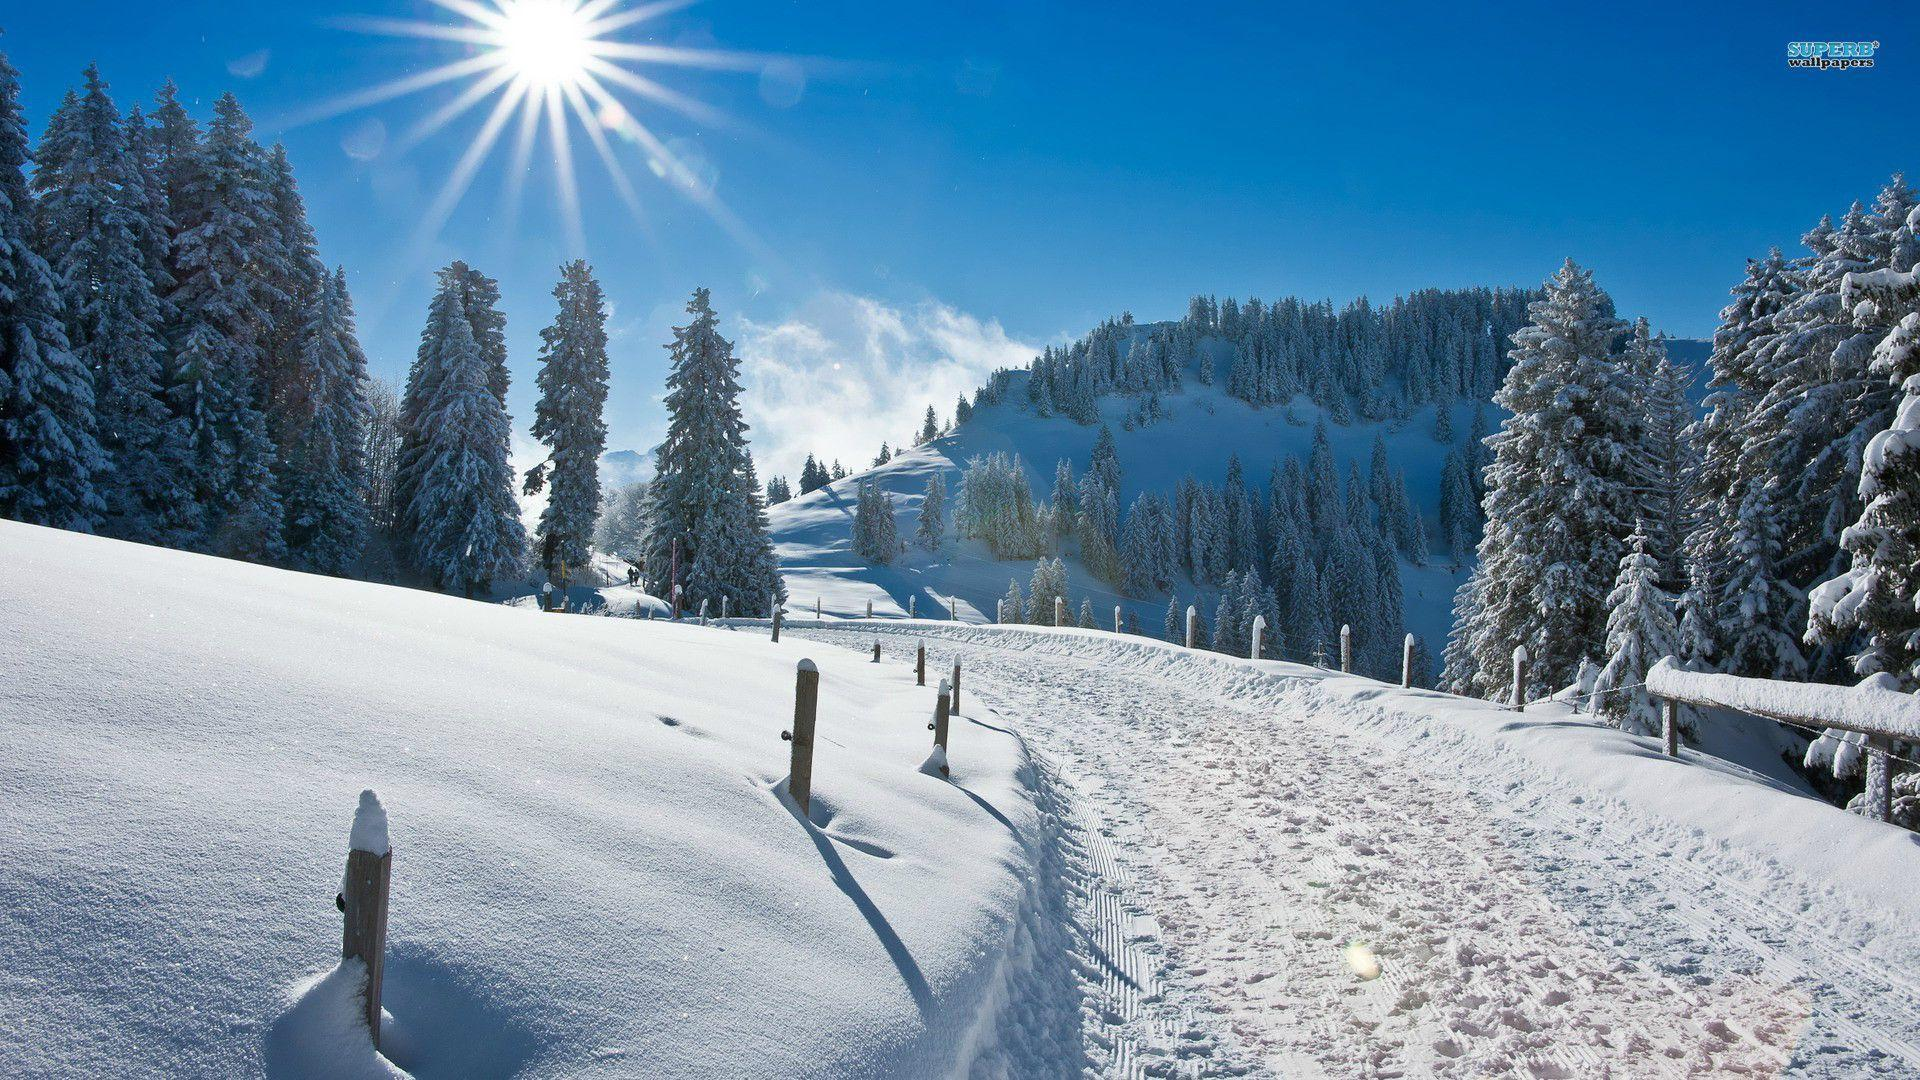 Sunny winter wallpaper - Nature wallpapers - #